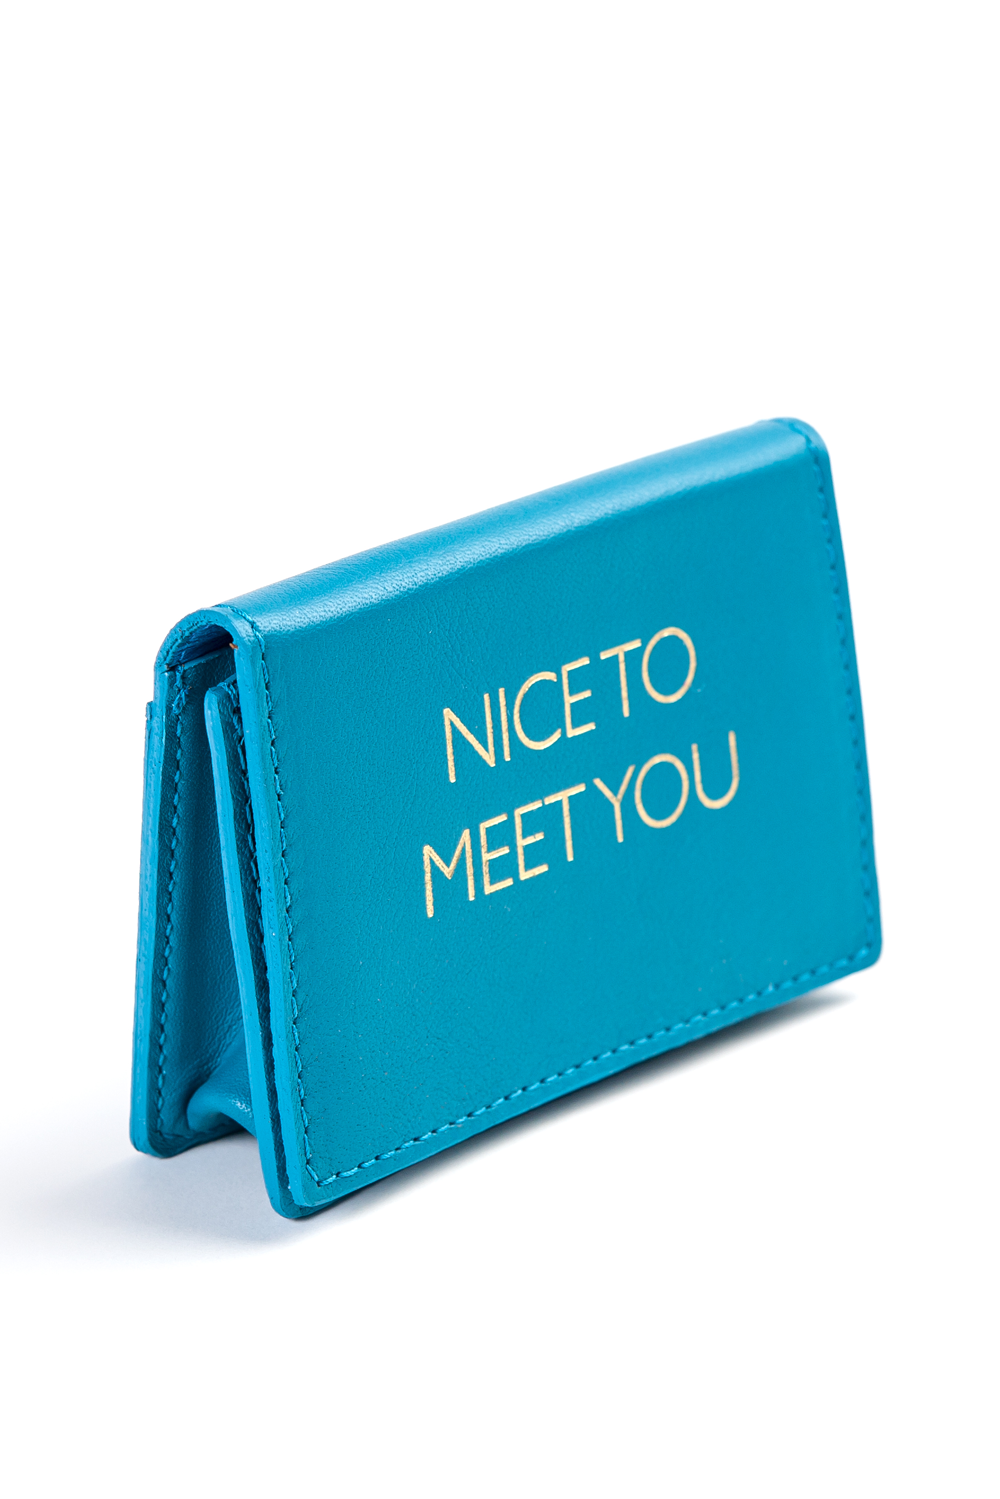 Mel Boteri | 'Nice To Meet You' Cardholder | Turquoise Leather | Side